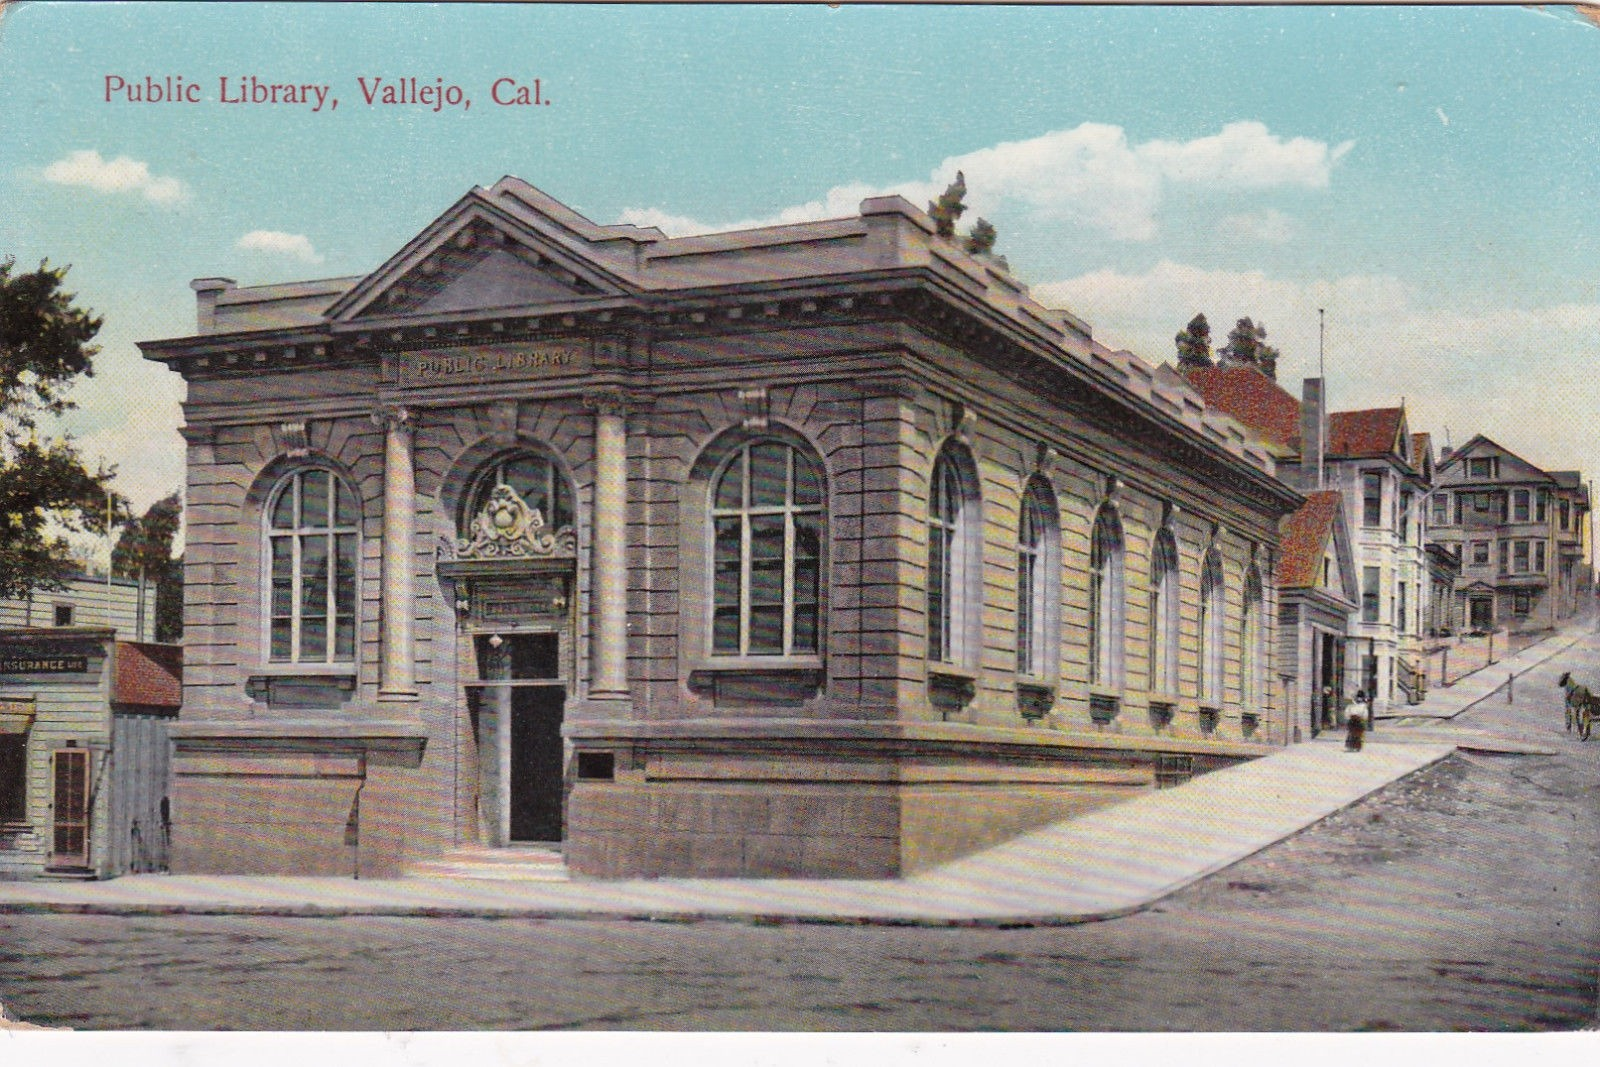 A Postcard Depicting The Original Vallejo Public Library Building, A Carnegie Library That Was Demolished In 1970.